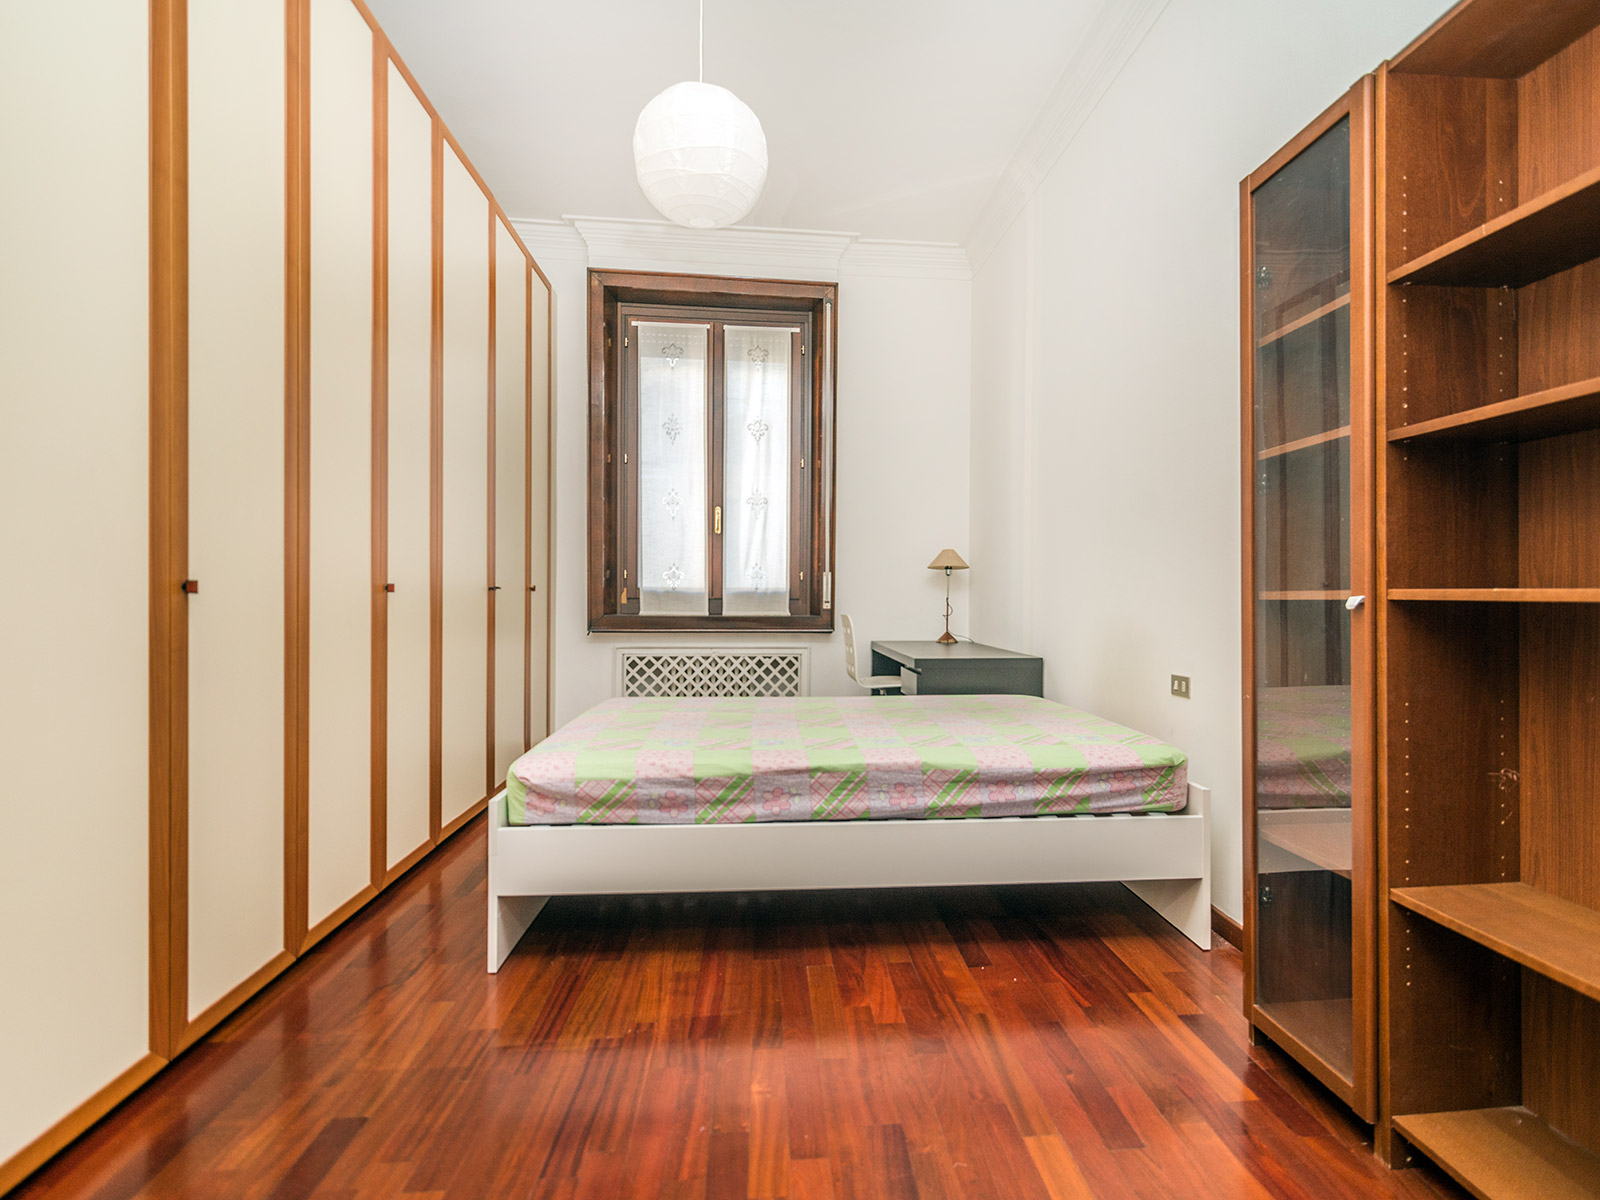 Additional photo for property listing at Charming apartment in prestigious building Piazza Duse Milano, Milan 20122 Italie